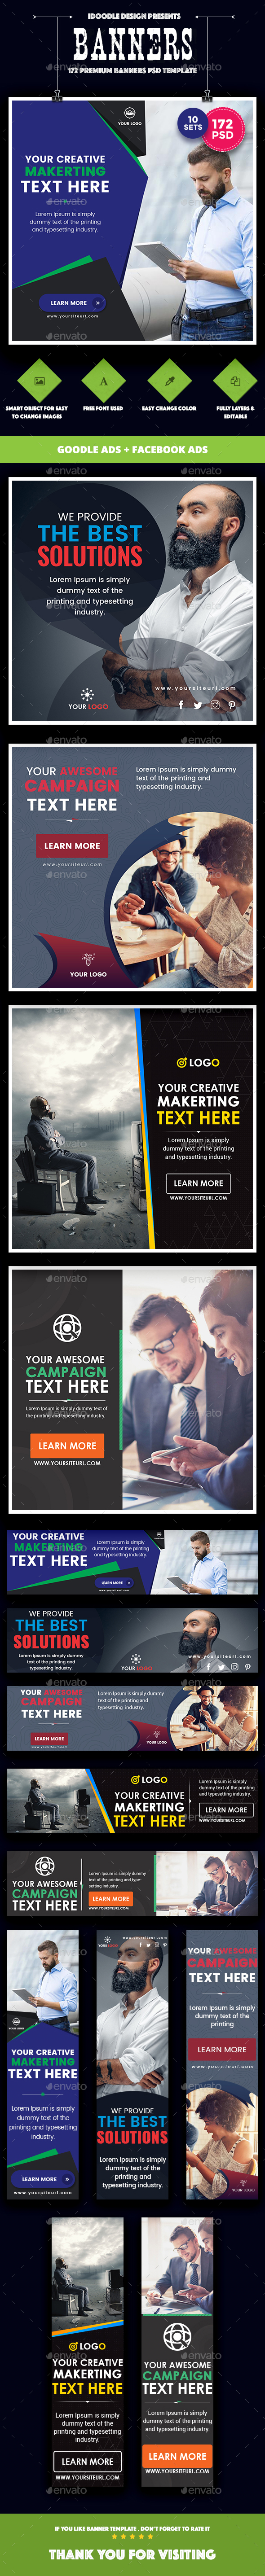 Bundle Multipurpose, Corporate, Business Banners Ad - 72PSD [ 10 Sets ] - Banners & Ads Web Elements